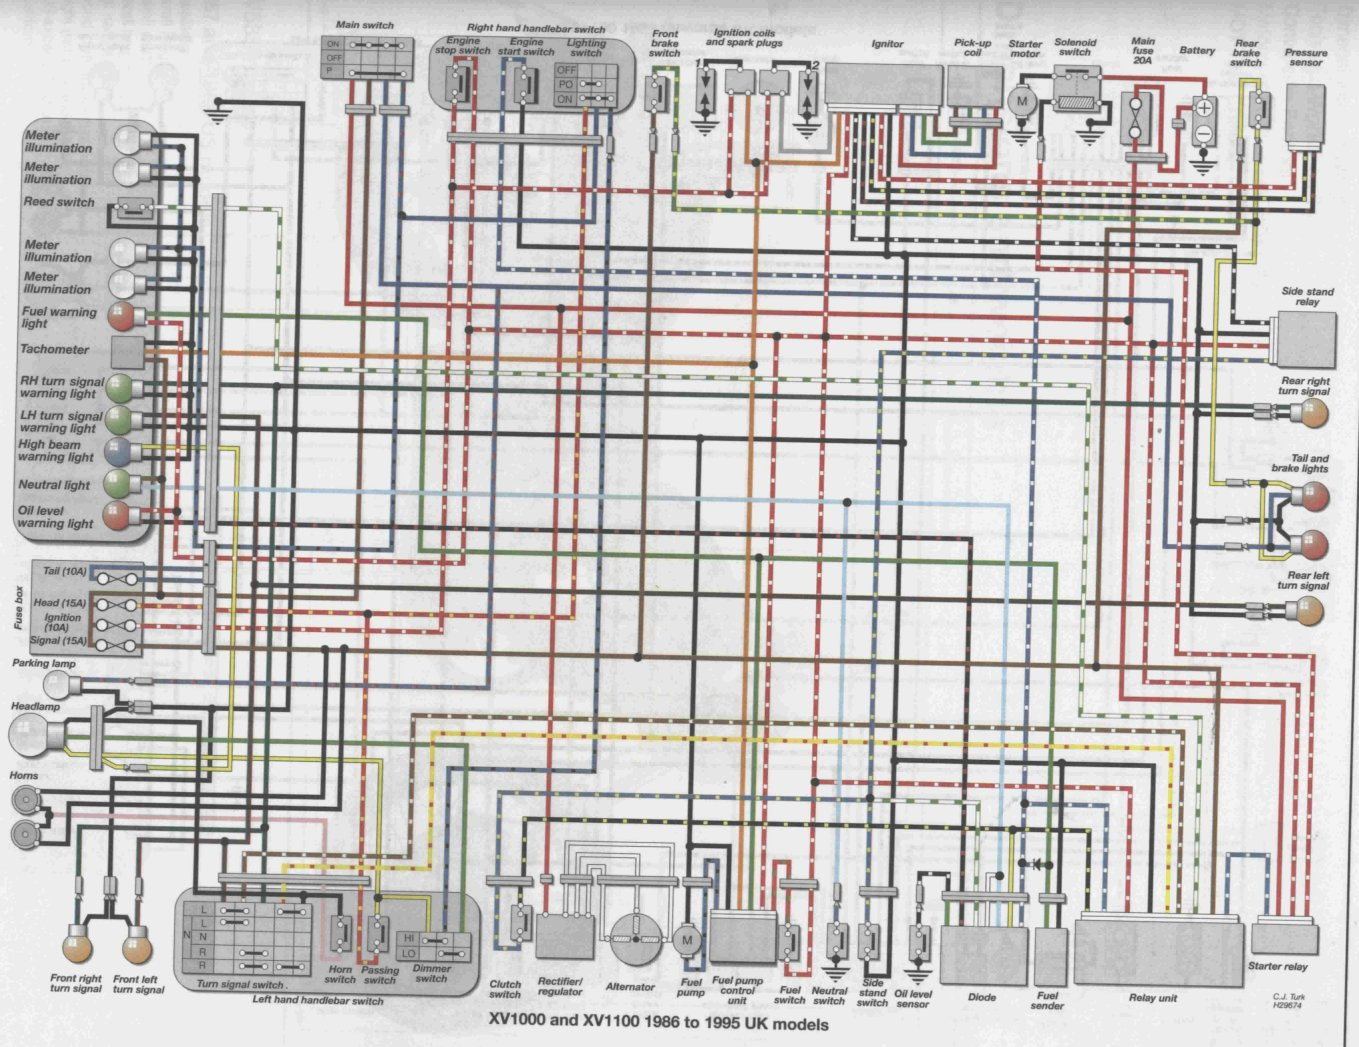 2006 Yamaha V Star Wiring Diagram | Wiring Diagram on bmw f650 wiring diagram, western star fuse diagram, honda magna wiring diagram, yamaha v star parts, triumph speed triple wiring diagram, yamaha v star coil, victory cross country wiring diagram, yamaha schematic diagram, silverado wiring diagram, triumph thunderbird wiring diagram, yamaha v star shock absorber, roadstar wiring diagram, yamaha v star oil filter, suzuki sv650 wiring diagram, kawasaki concours wiring diagram, honda shadow wiring diagram, ducati wiring diagram, kawasaki vulcan wiring diagram, yamaha v star exhaust, suzuki intruder wiring diagram,